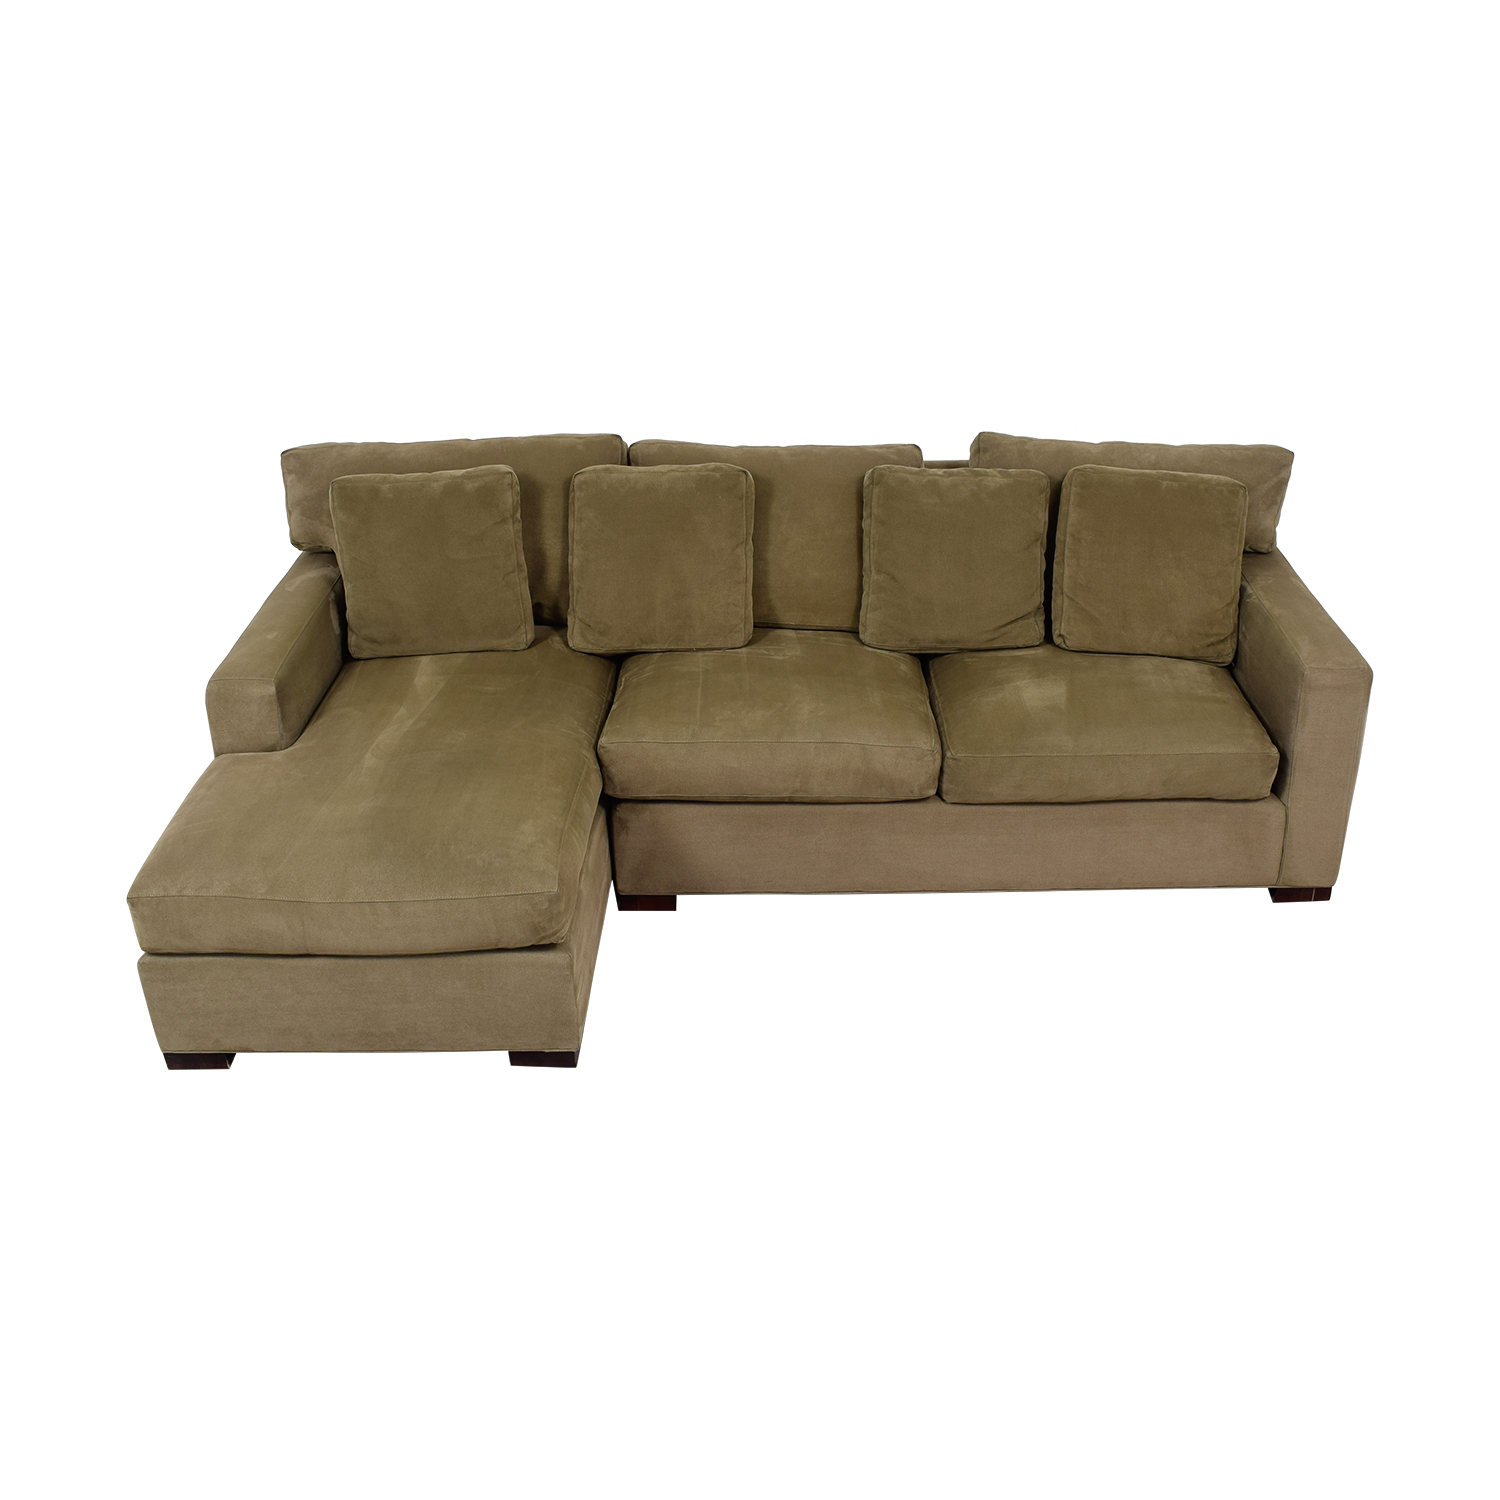 buy Crate & Barrel Axis II Green Chaise Sectional Crate & Barrel Sectionals